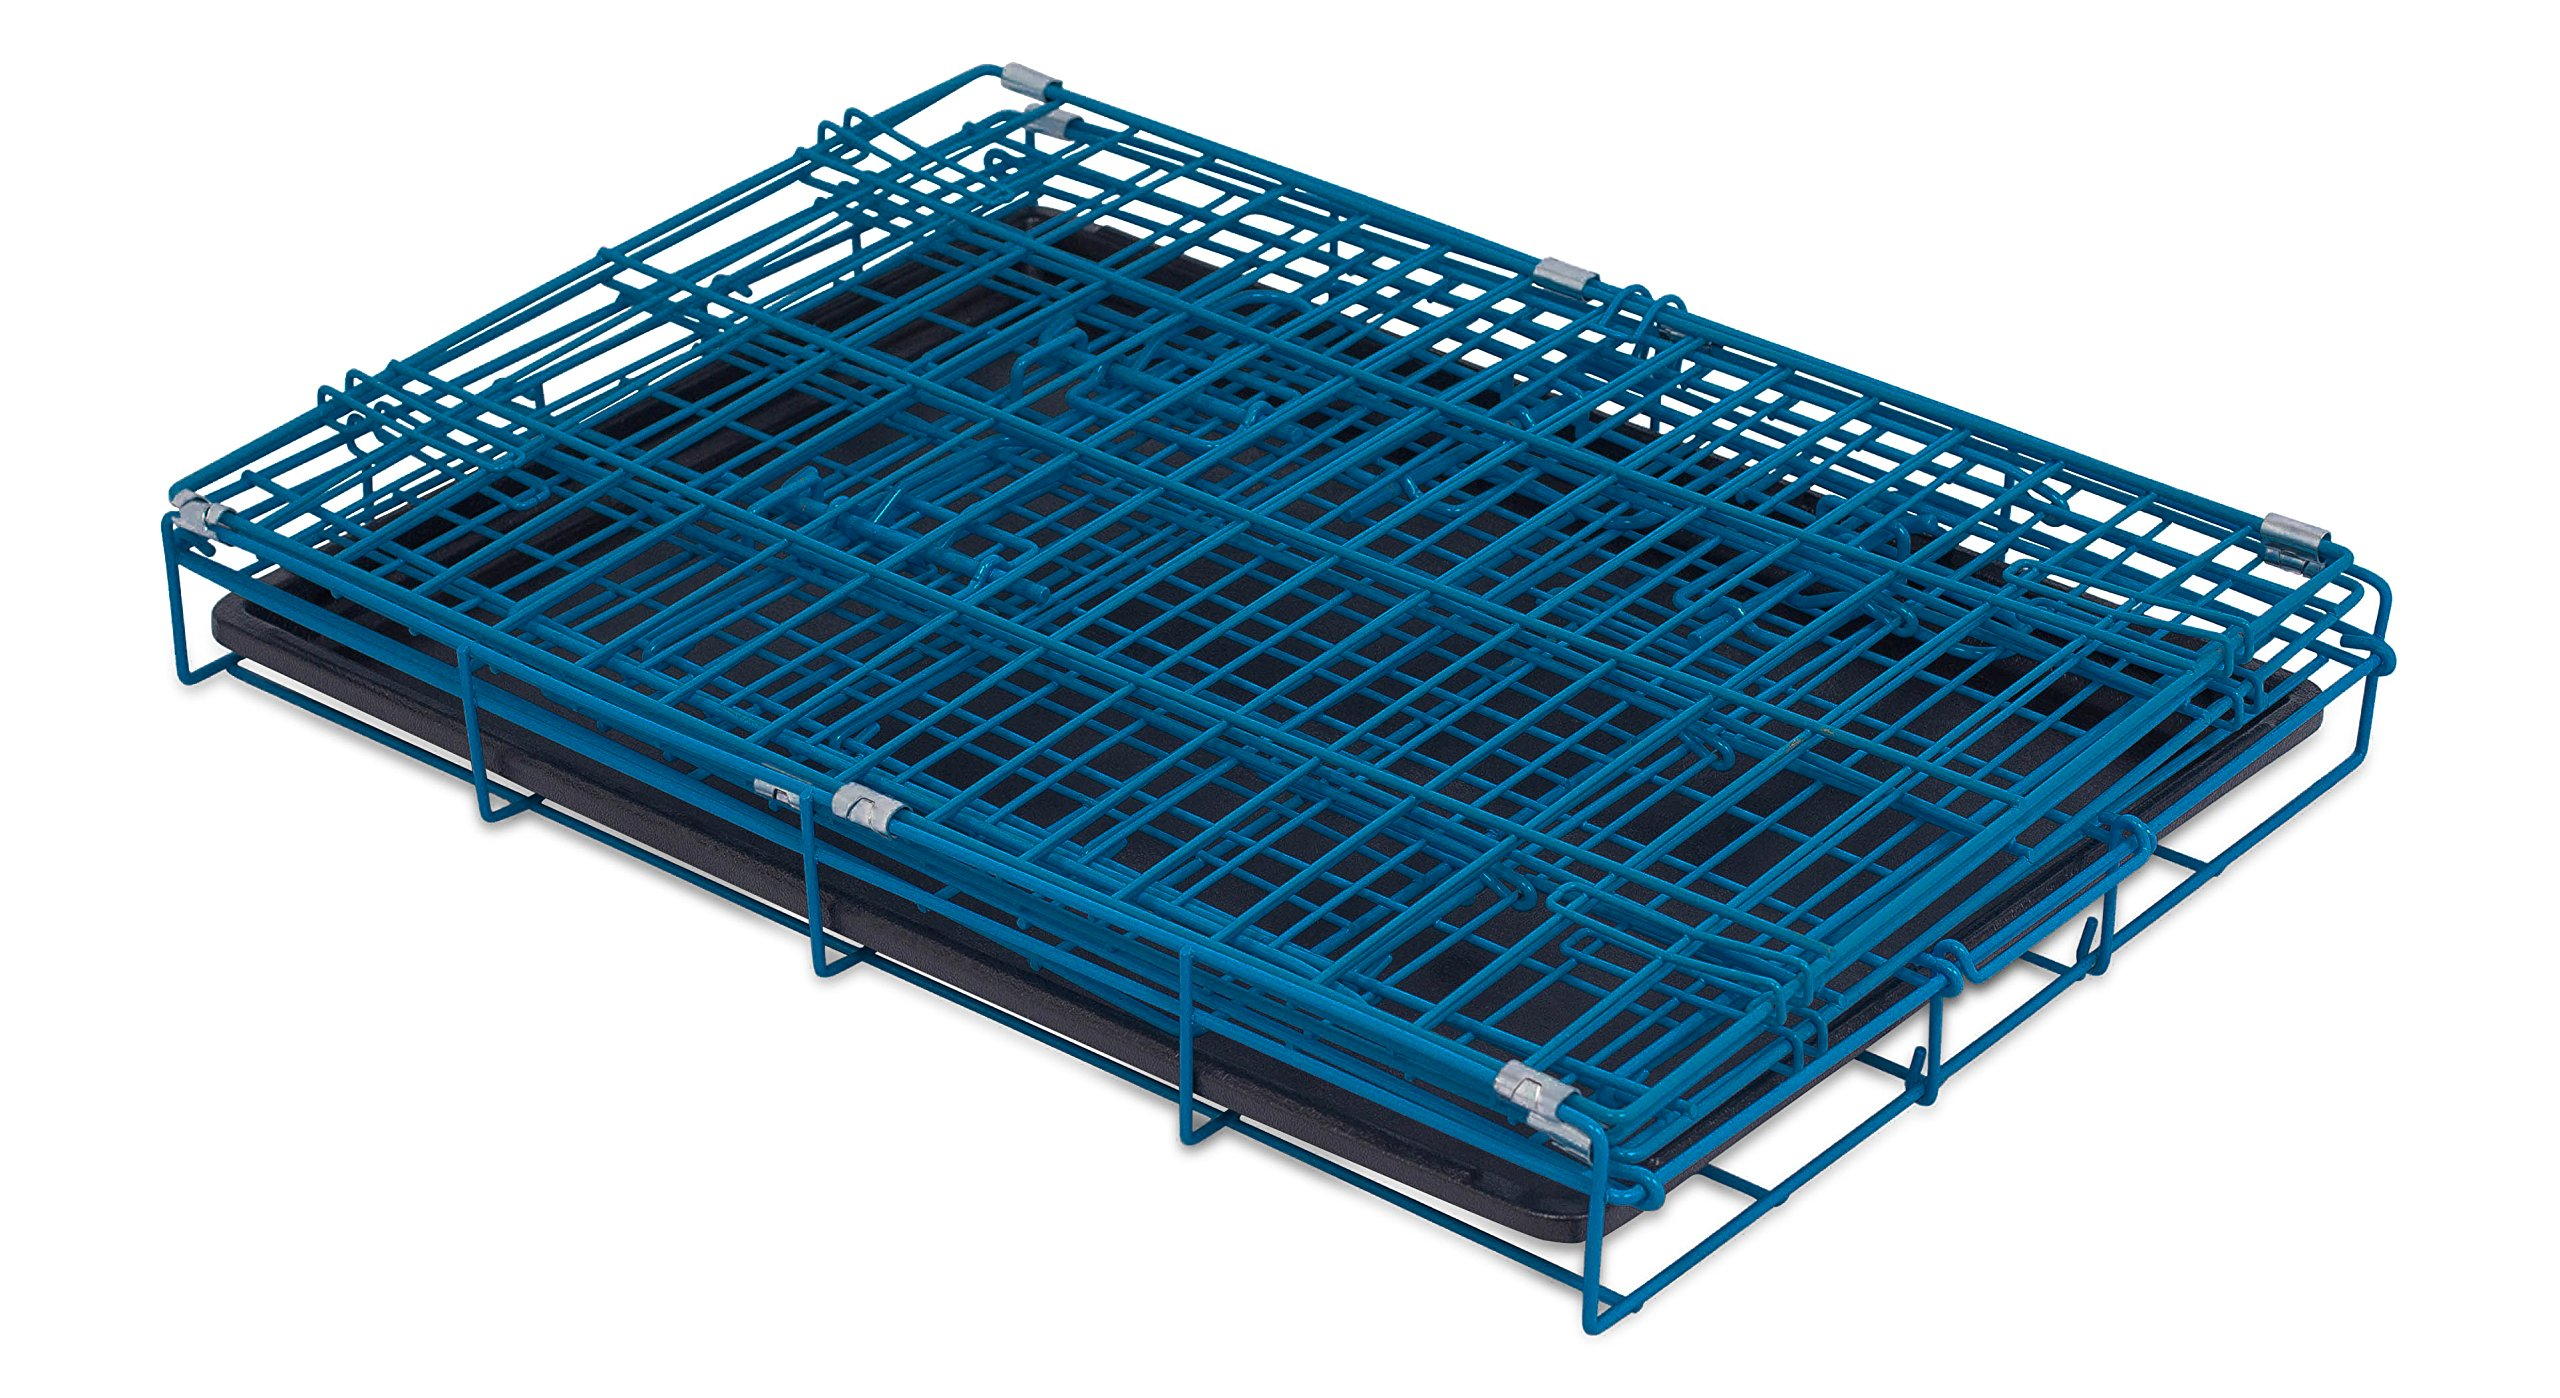 Internet's Best Double Door Steel Crates Collapsible and Foldable Wire Dog Kennel, 24 Inch (Small), Blue by Internet's Best (Image #3)